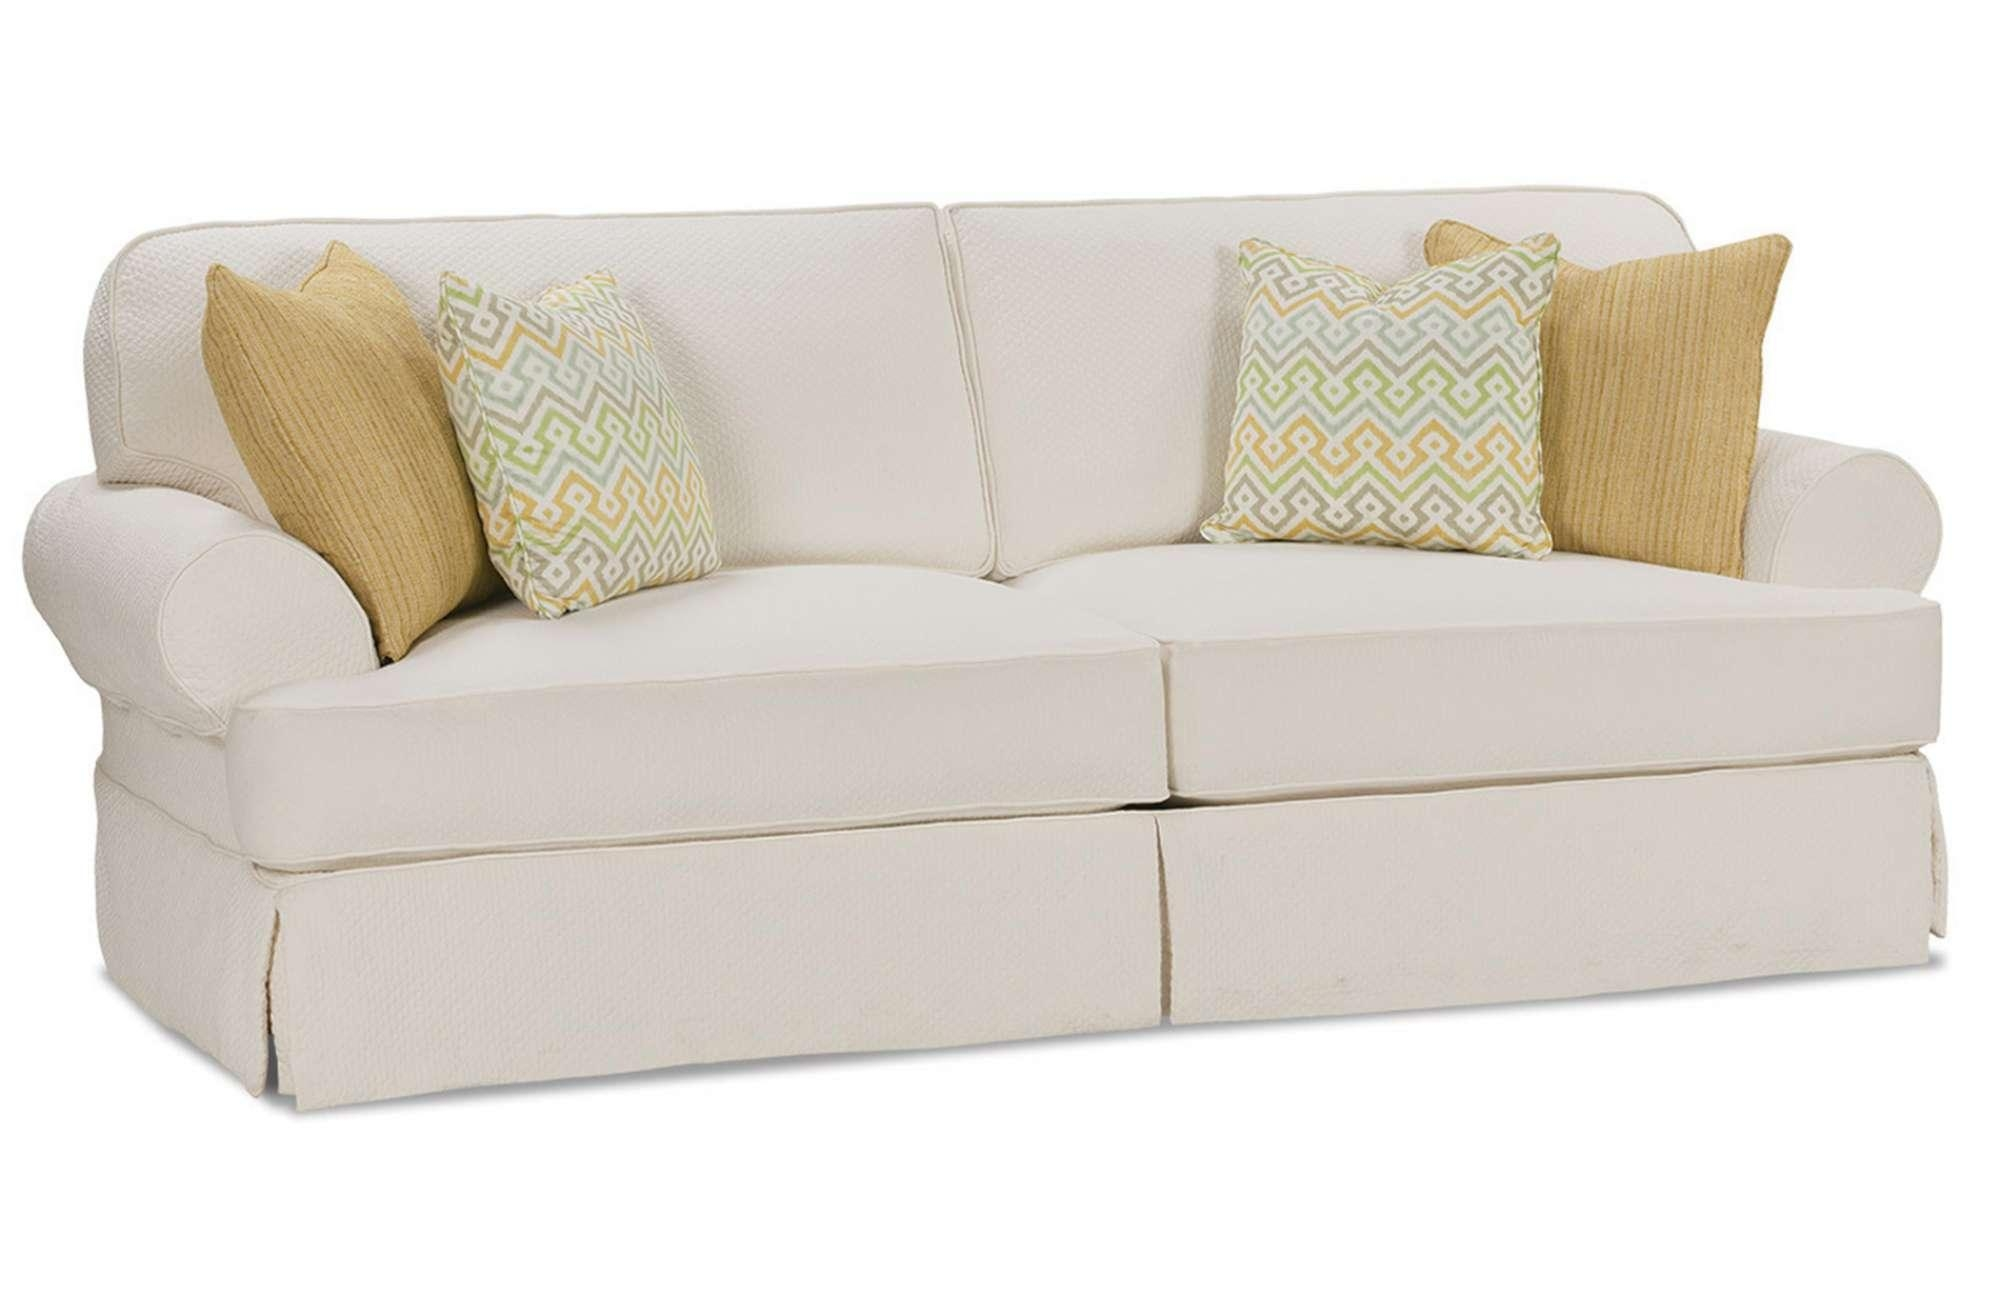 Furniture & Rug: Charming Rowe Furniture Slipcovers For Best Intended For Sleeper Sofa Slipcovers (Image 5 of 20)